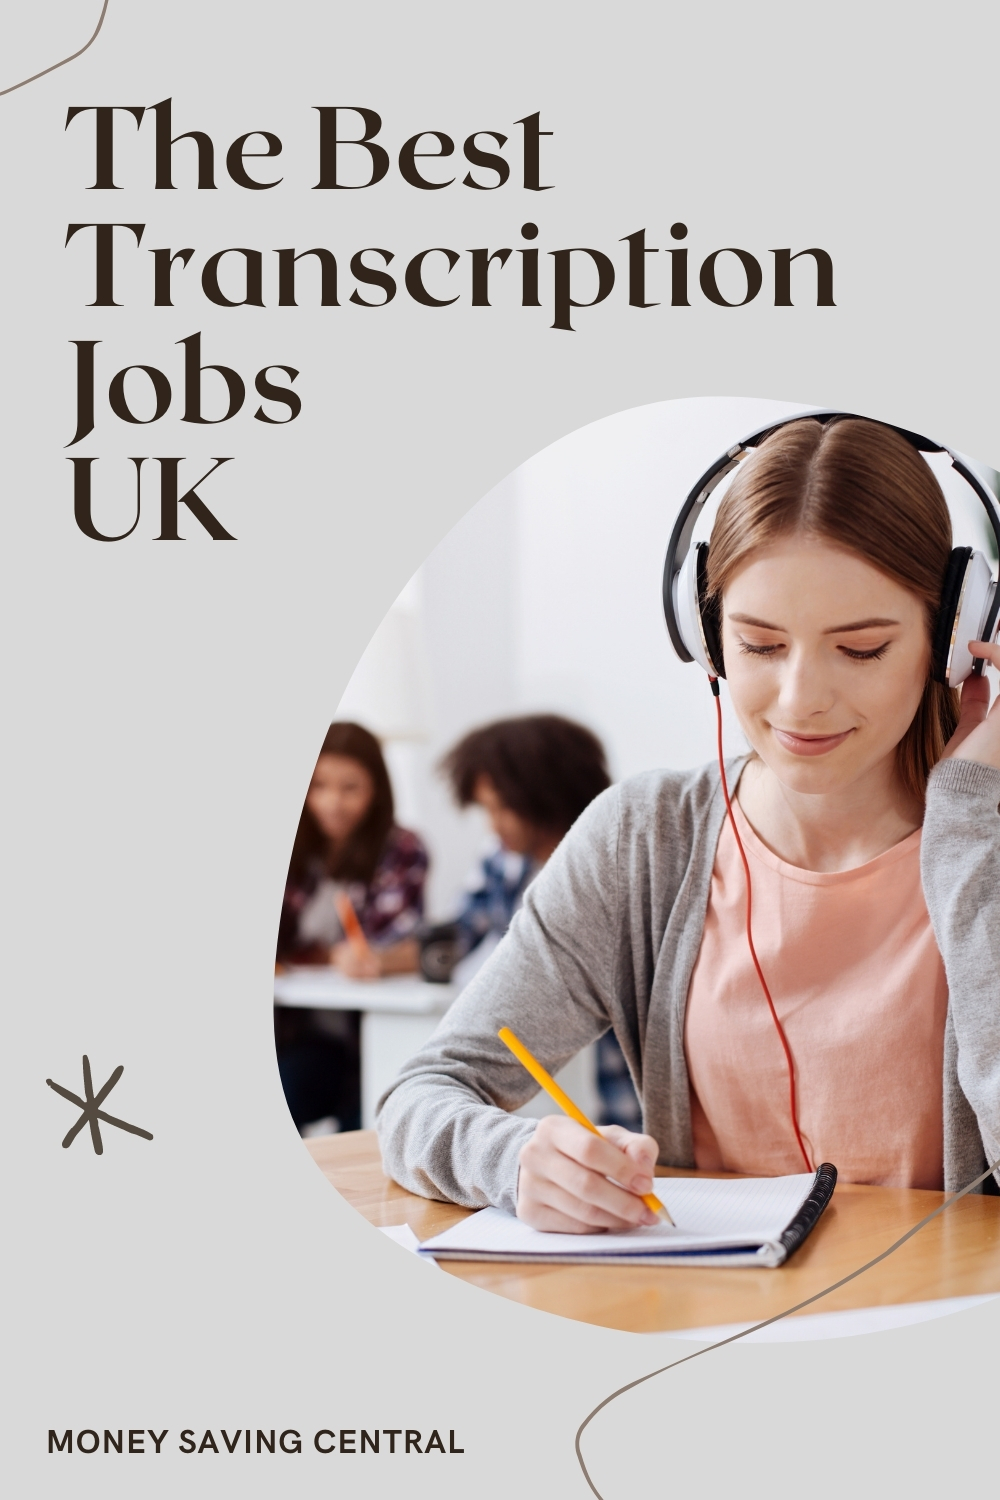 Transcription Jobs UK - Earn Money Typing & Transcribing at Home